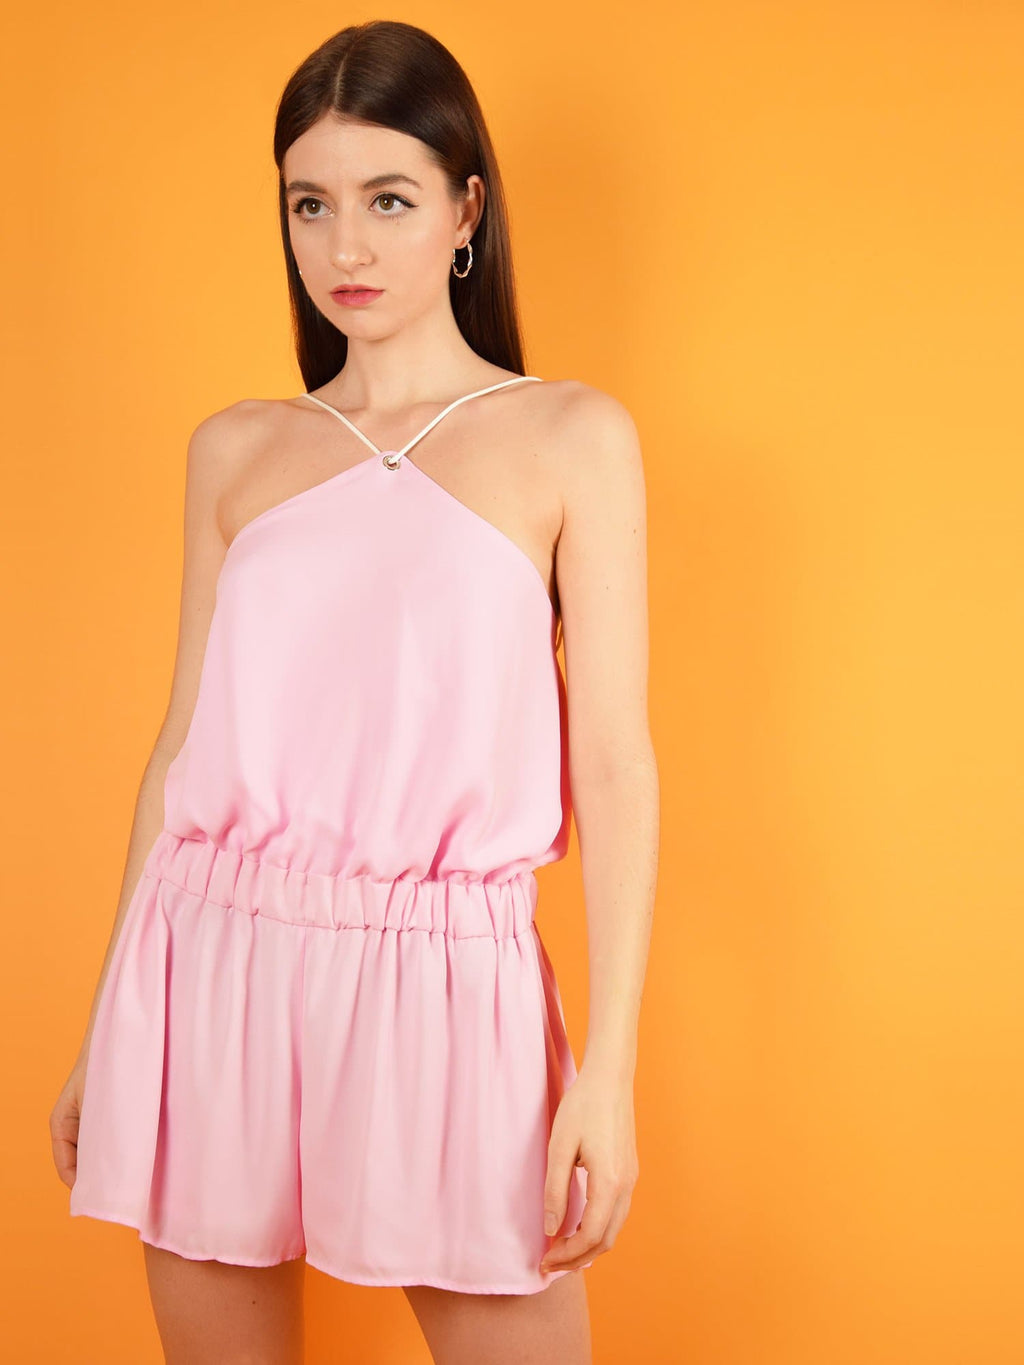 The desert dreams playsuit in pink is a summer jumpsuit with a short silhouette, loose fit and adjustable shoulder straps for a perfect fit.